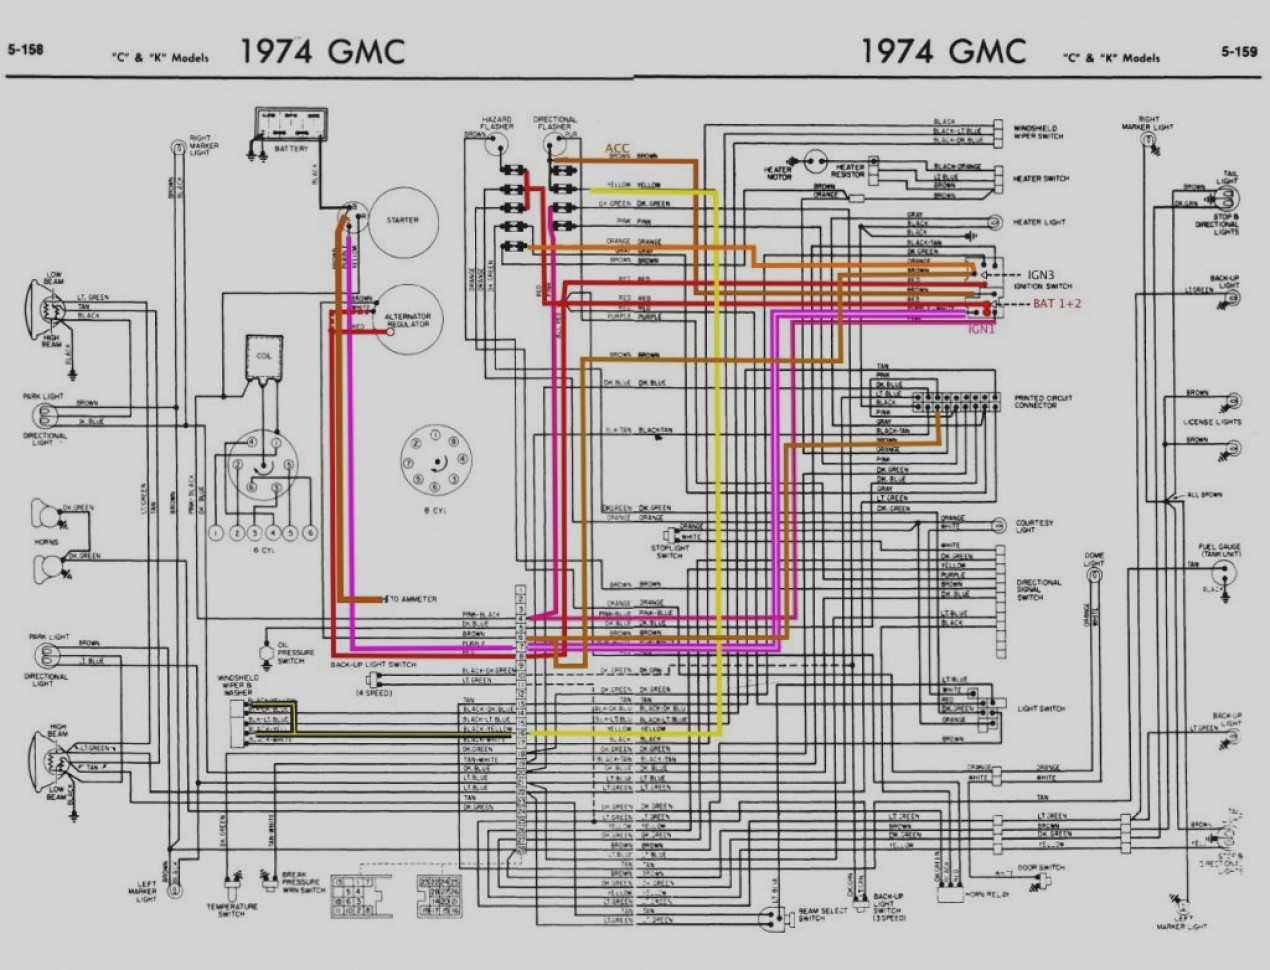 1969 Gmc Wiring Diagram Indepth Diagrams Beaumont Chevy C 10 Truck Enthusiast U2022 Rh Rasalibre Co 1988 2005 Sierra